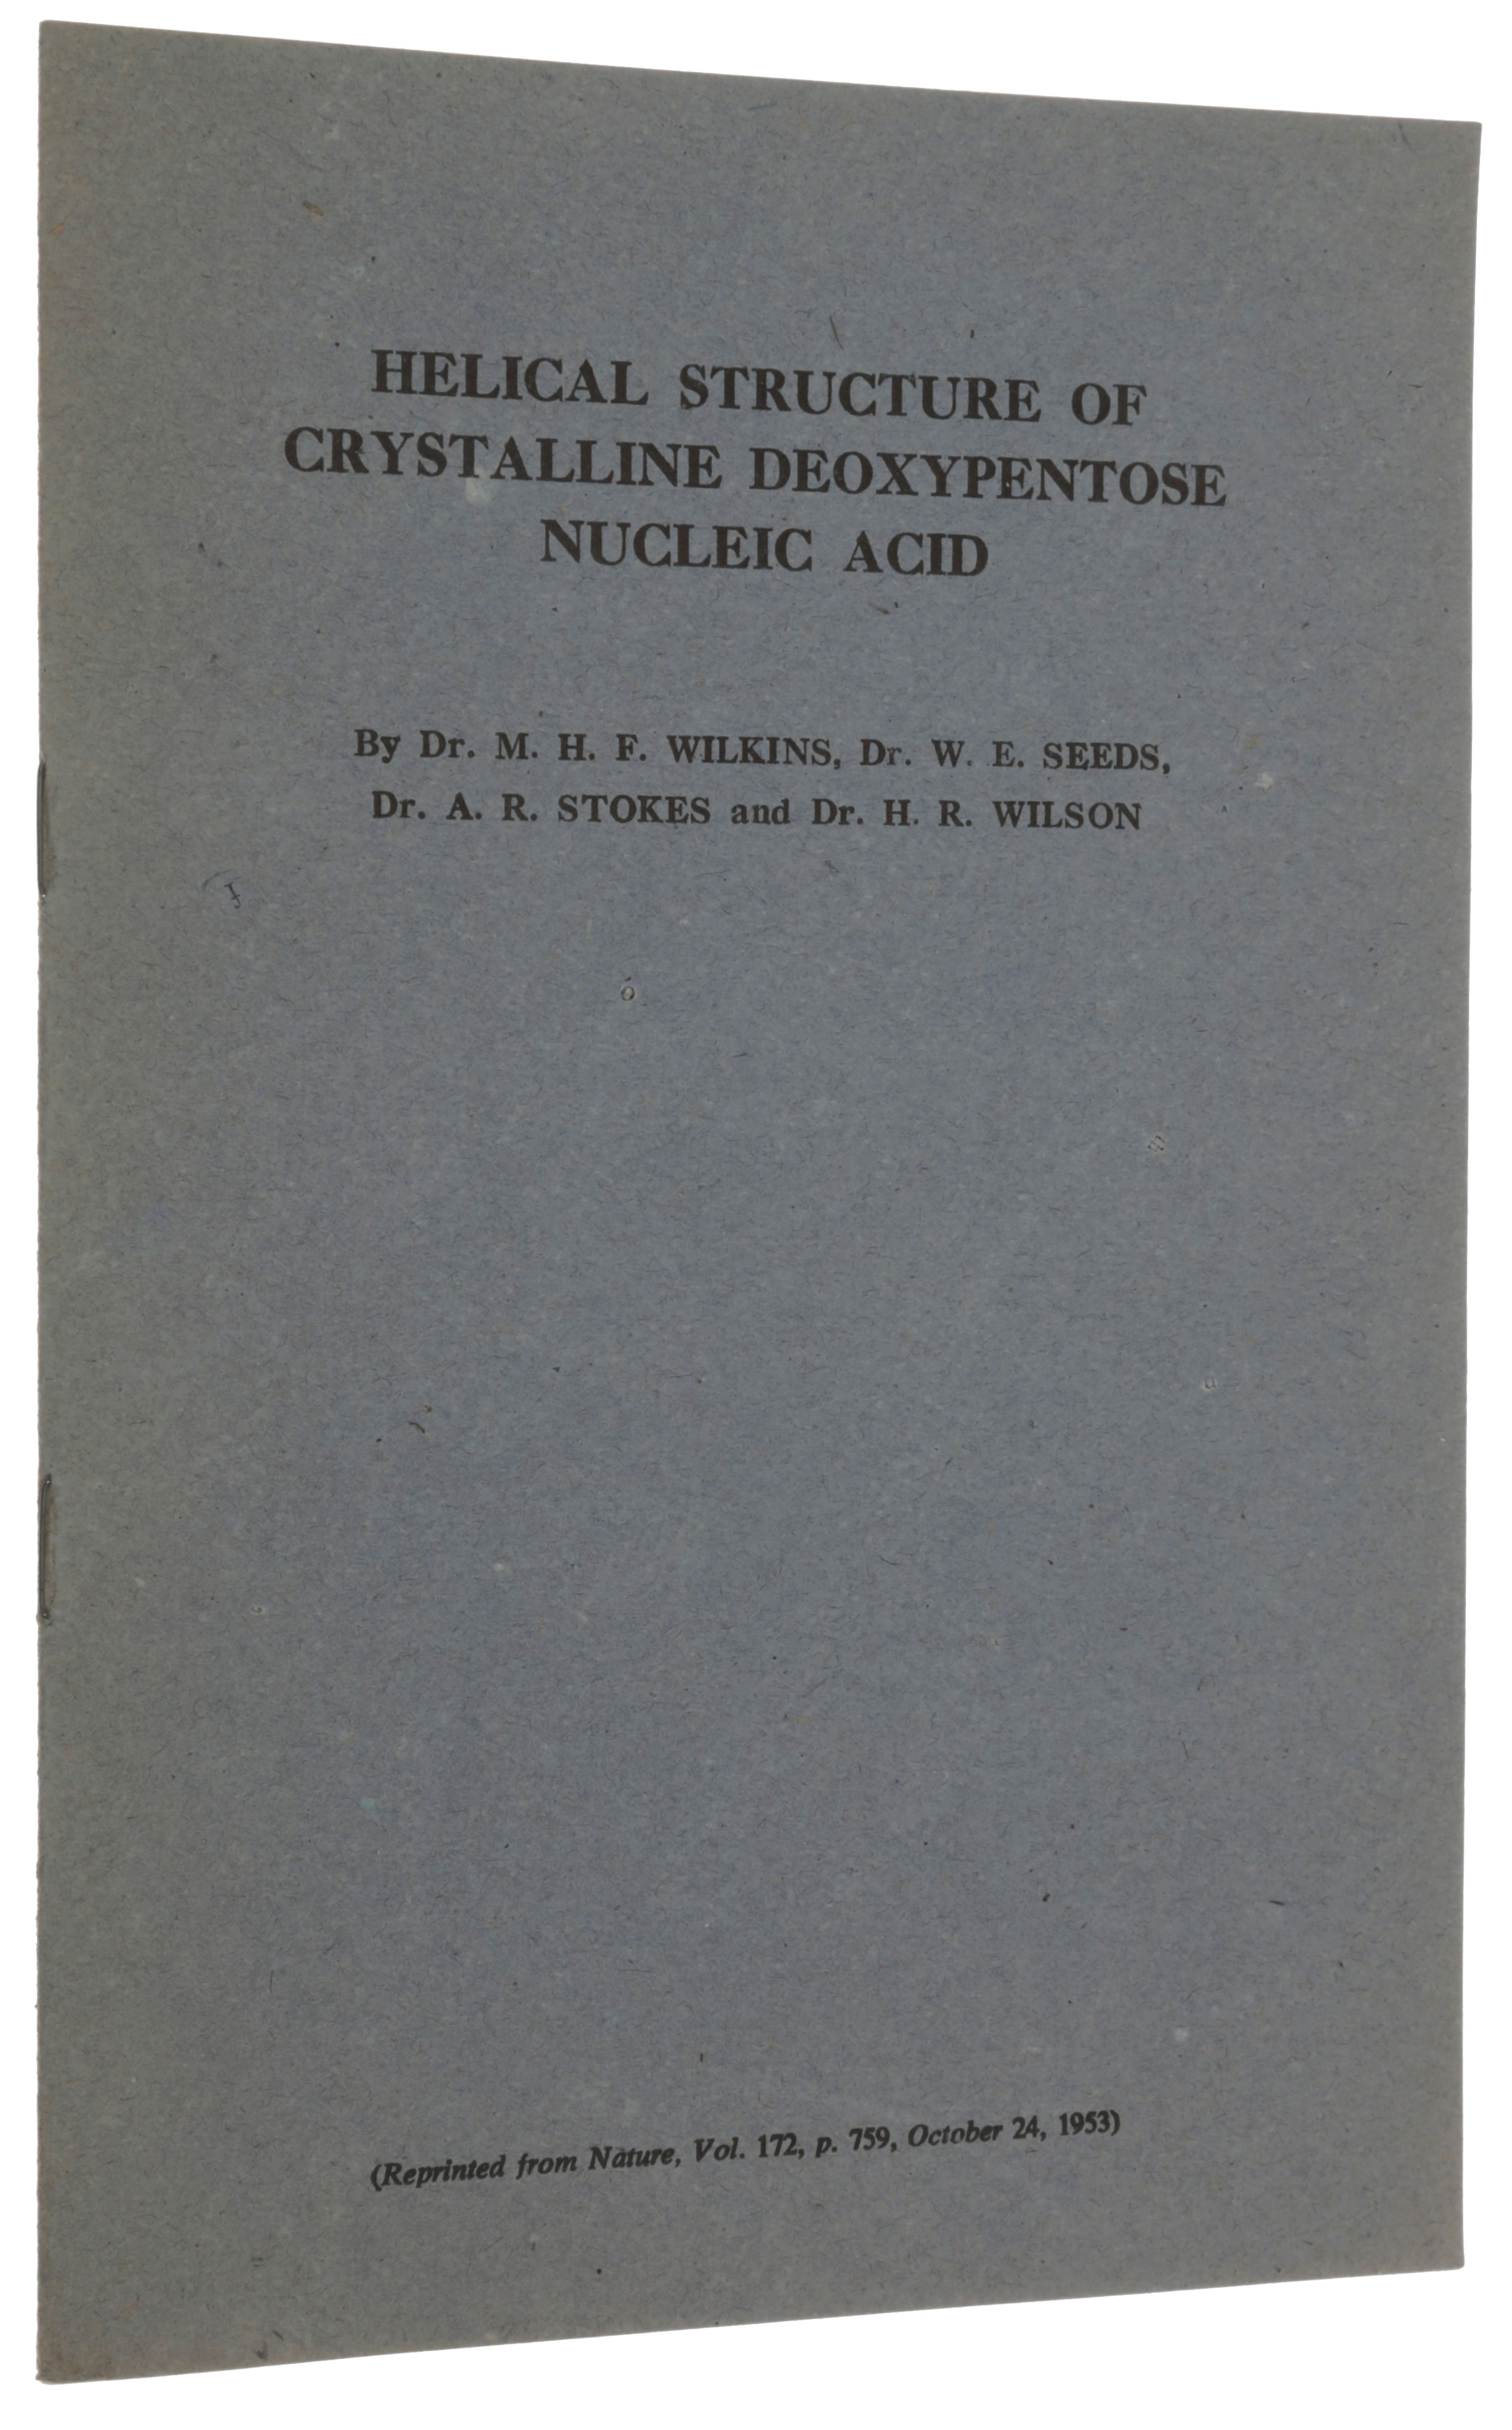 Helical structure of crystalline deoxypentose nucleic acid. Offprint from: Nature, Vol. 172, No. 4382, October 24, 1953. M. H. F. WILKINS, A. R., STOKES, W. E., SEEDS, H. R. WILSON.